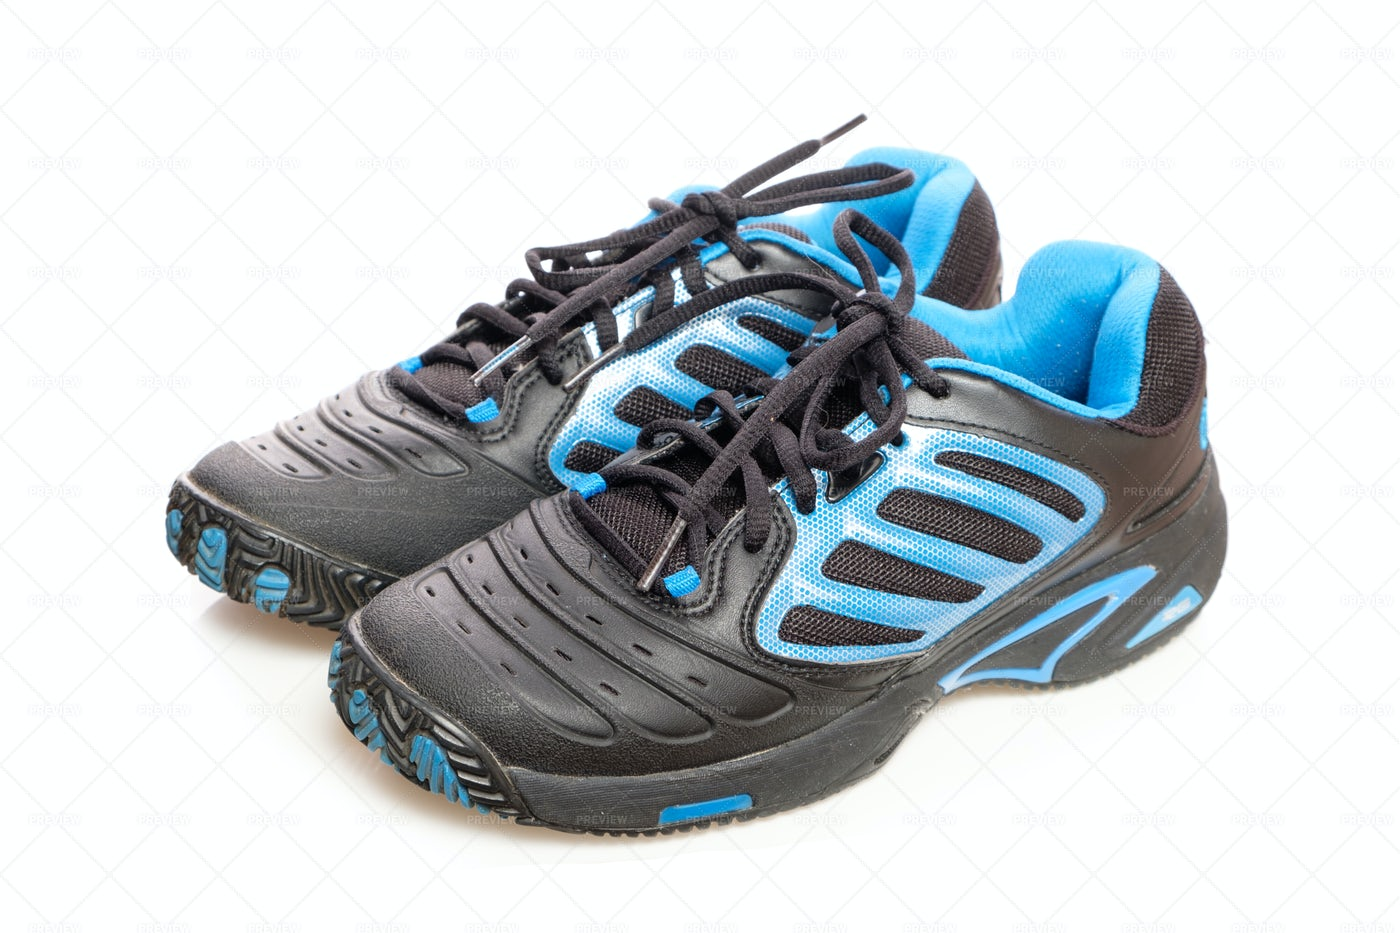 Black And Blue Sneakers: Stock Photos